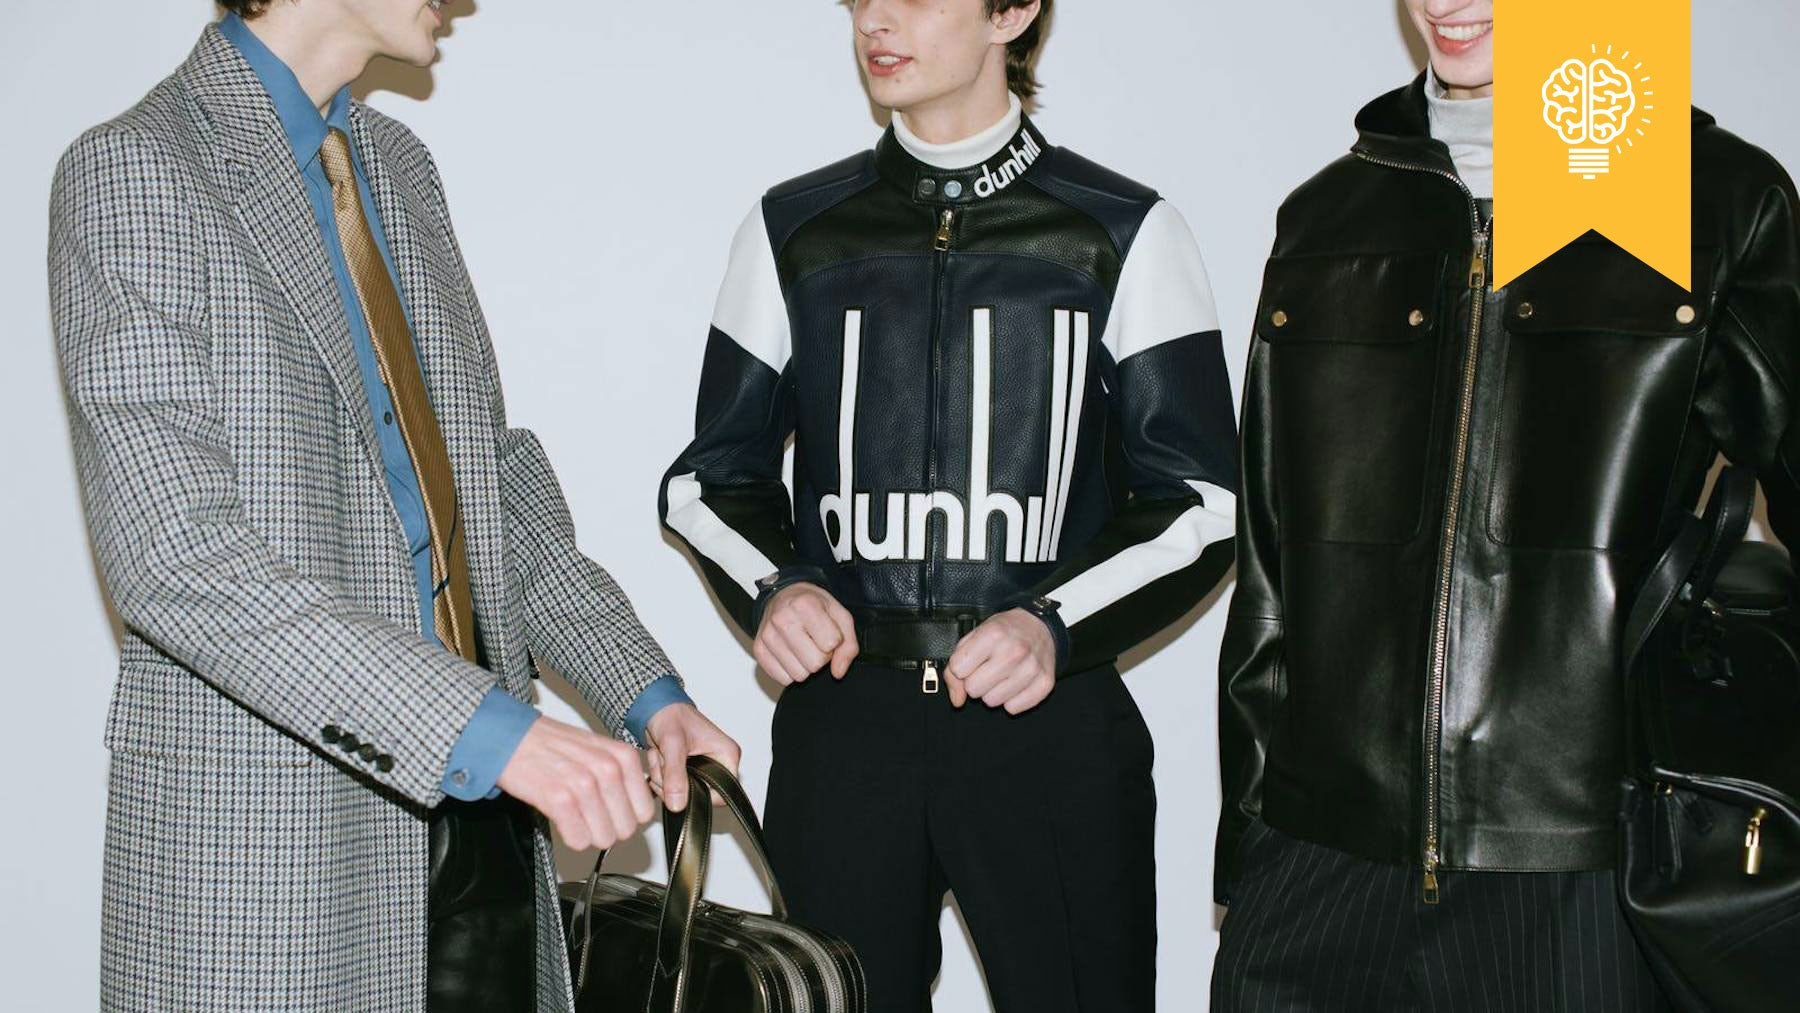 Backstage at Dunhill's Autumn/Winter 2018 show | Source: Dunhill